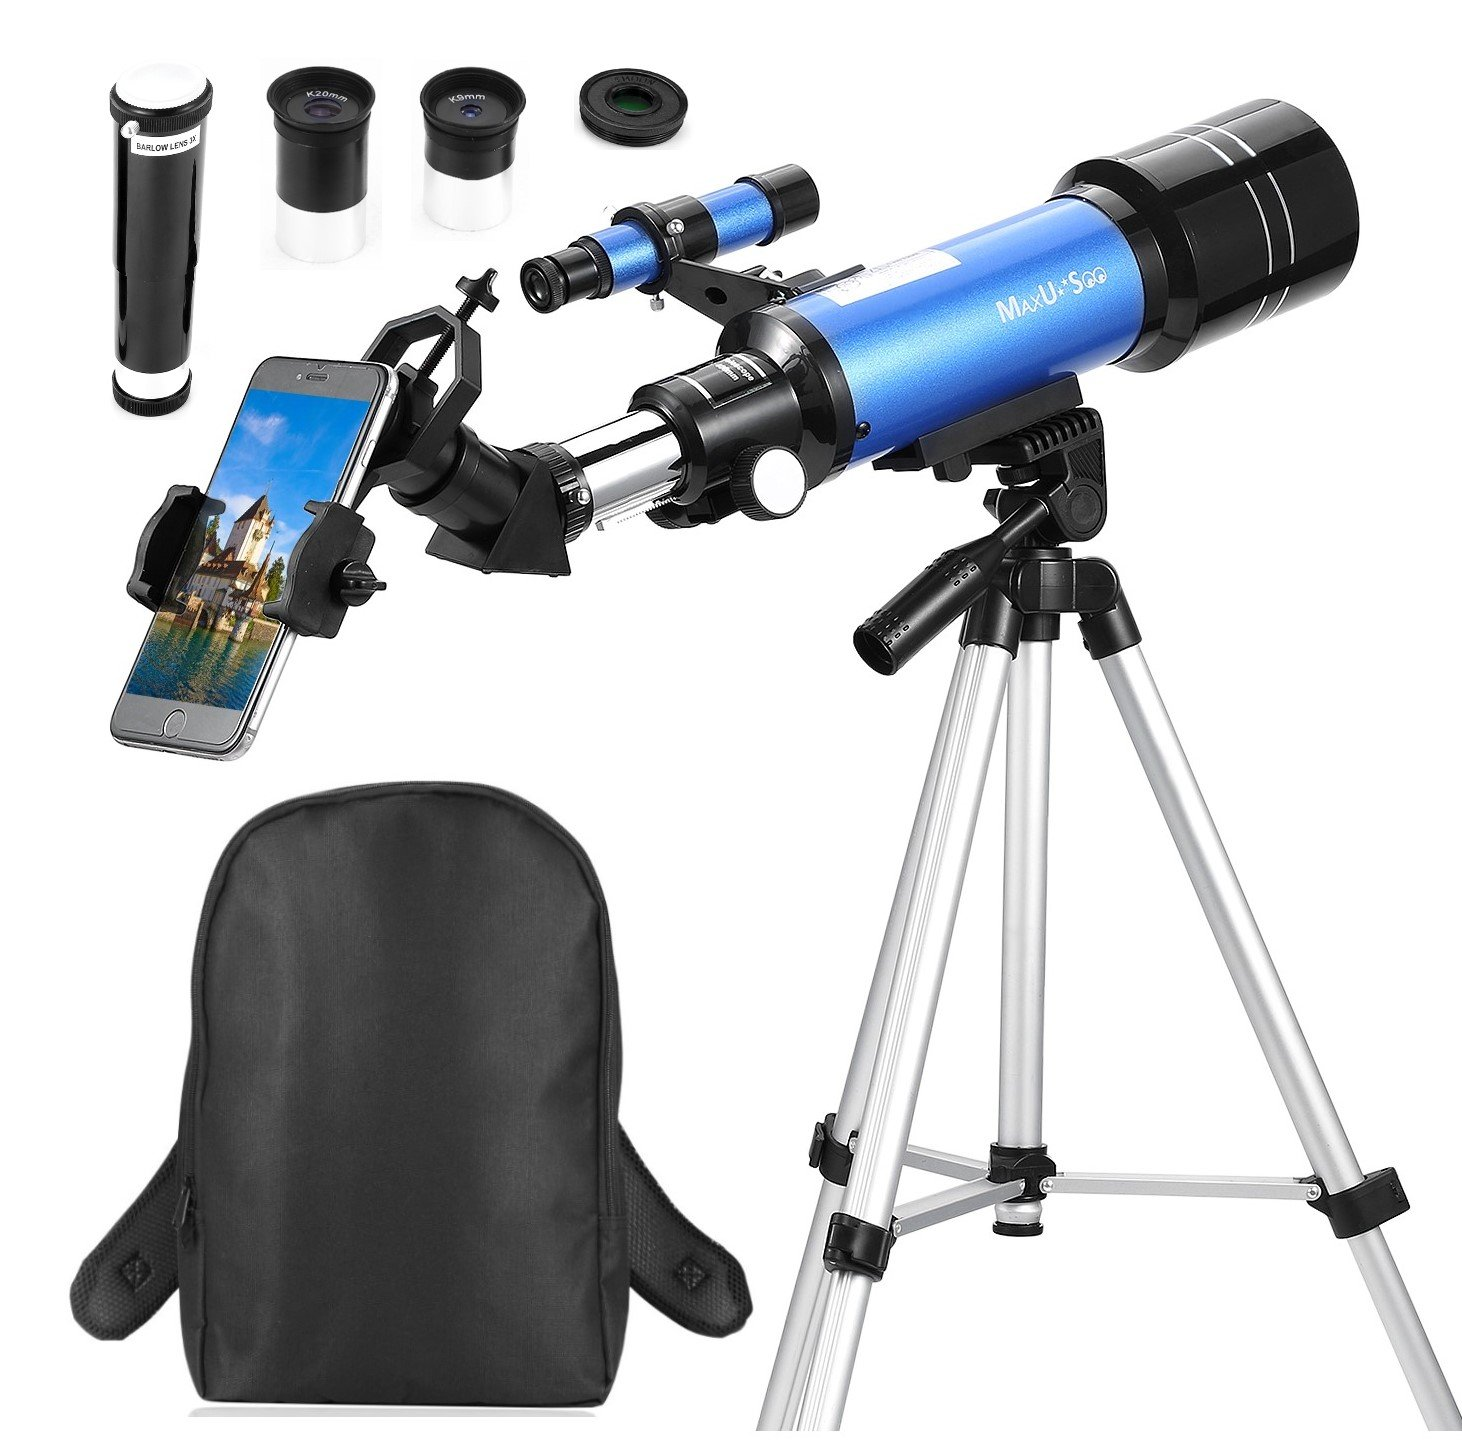 MaxUSee 70mm Telescope for Kids & Beginners, Travel Scope with Backpack for Moon Stars Viewing Bird Watching Sightseeing, Refractor Telescope with Adjustable Tripod & Smartphone Adapter by MaxUSee